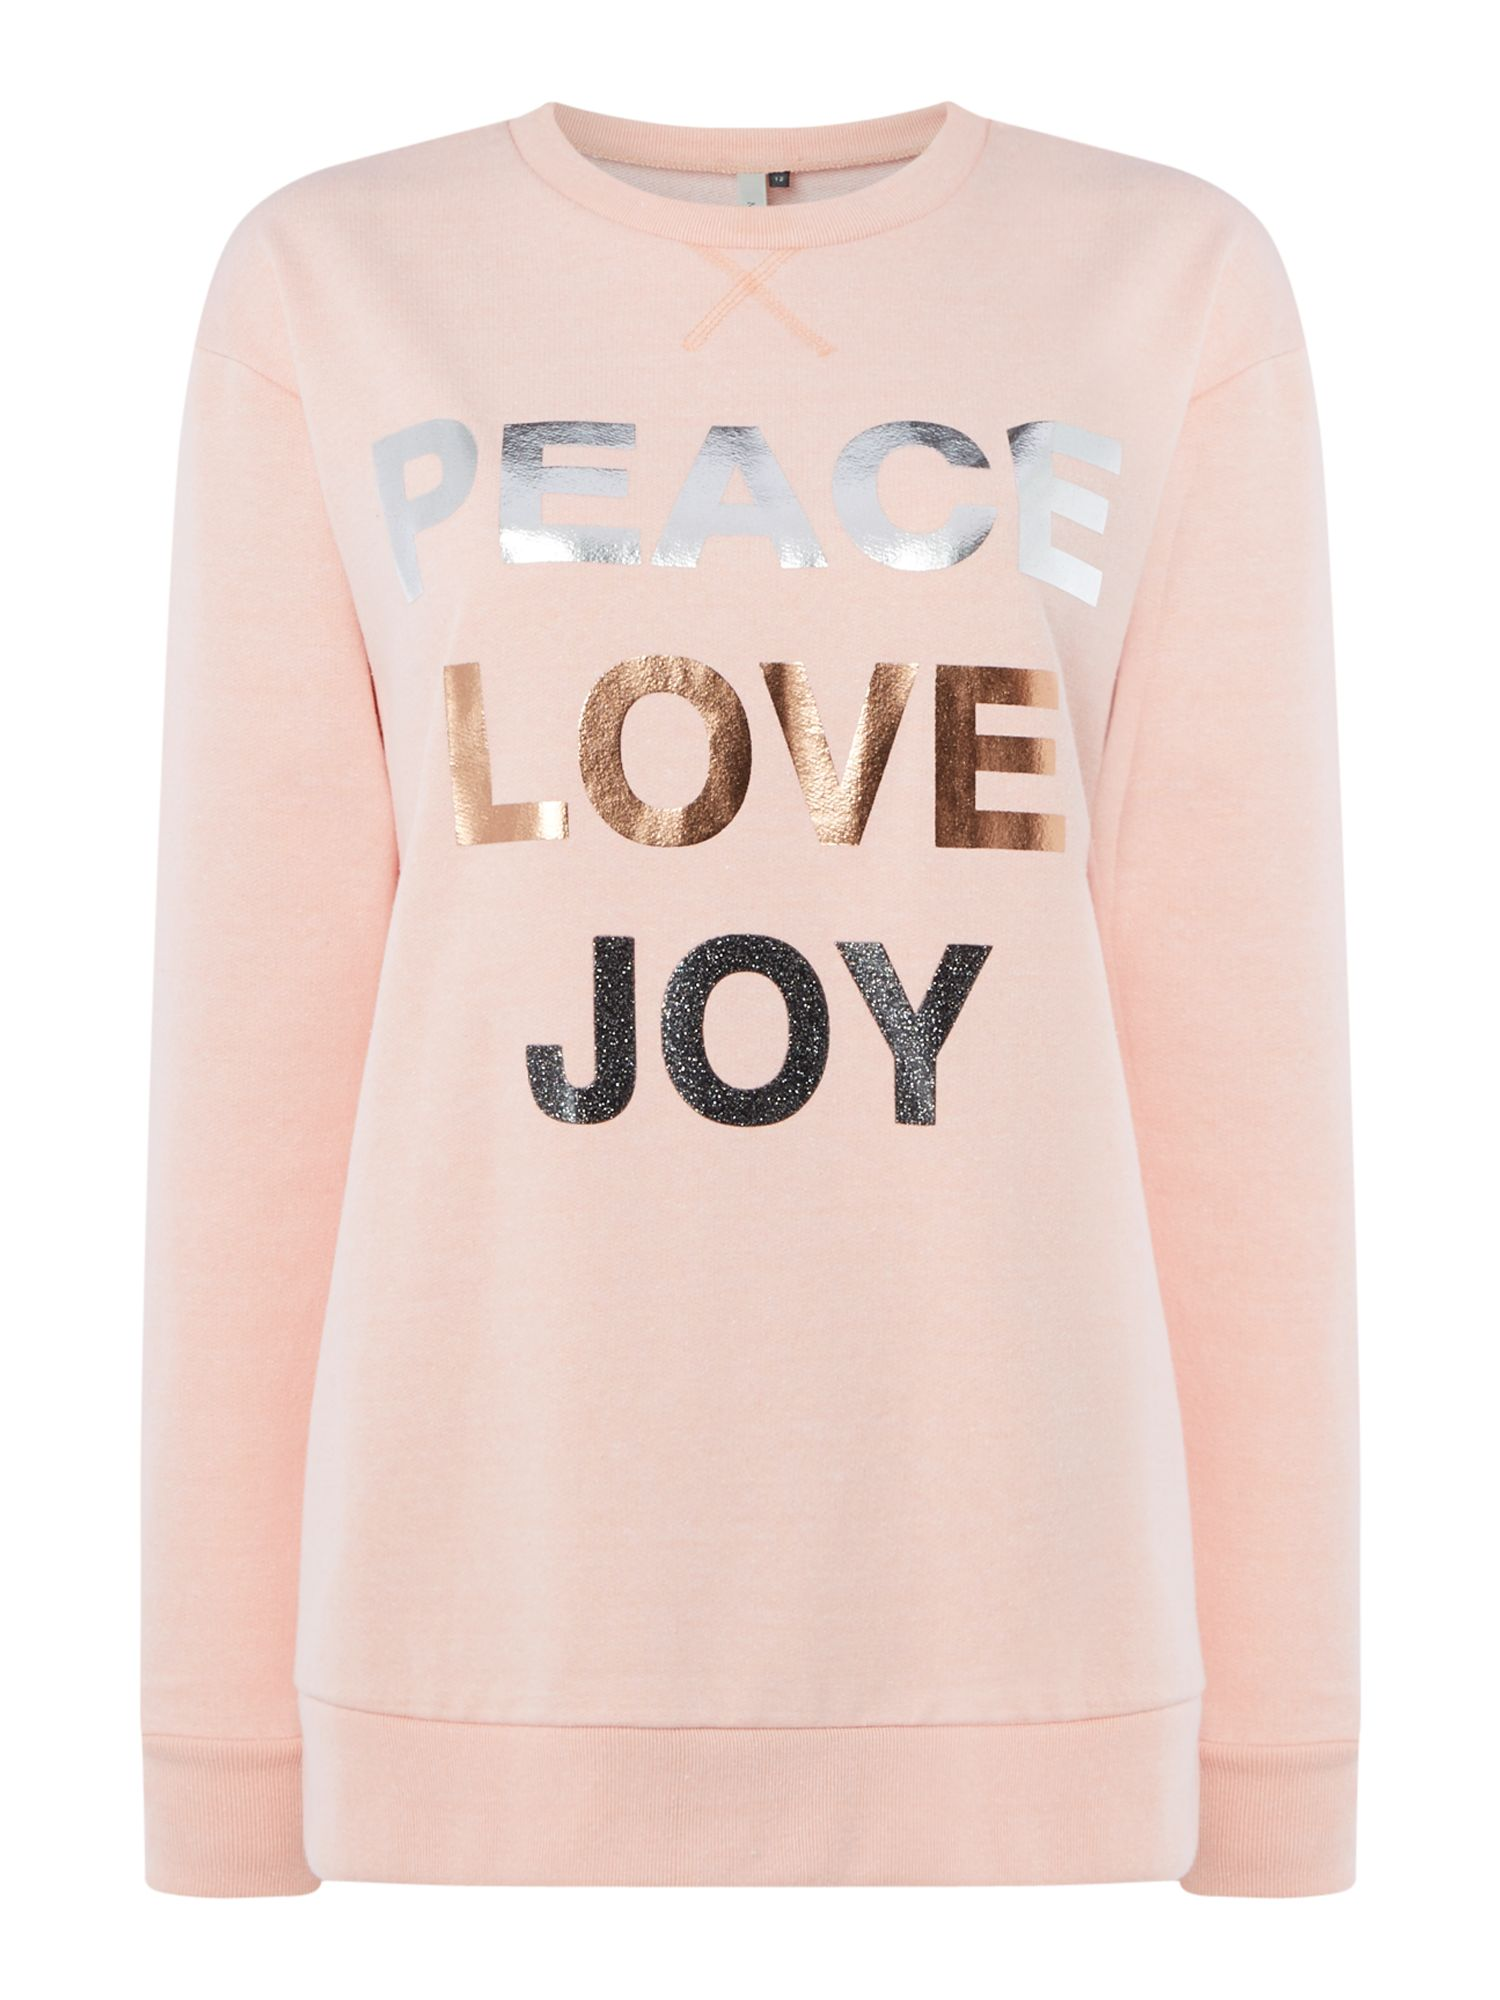 Maison De Nimes Peace Love Joy Sweat, Pink